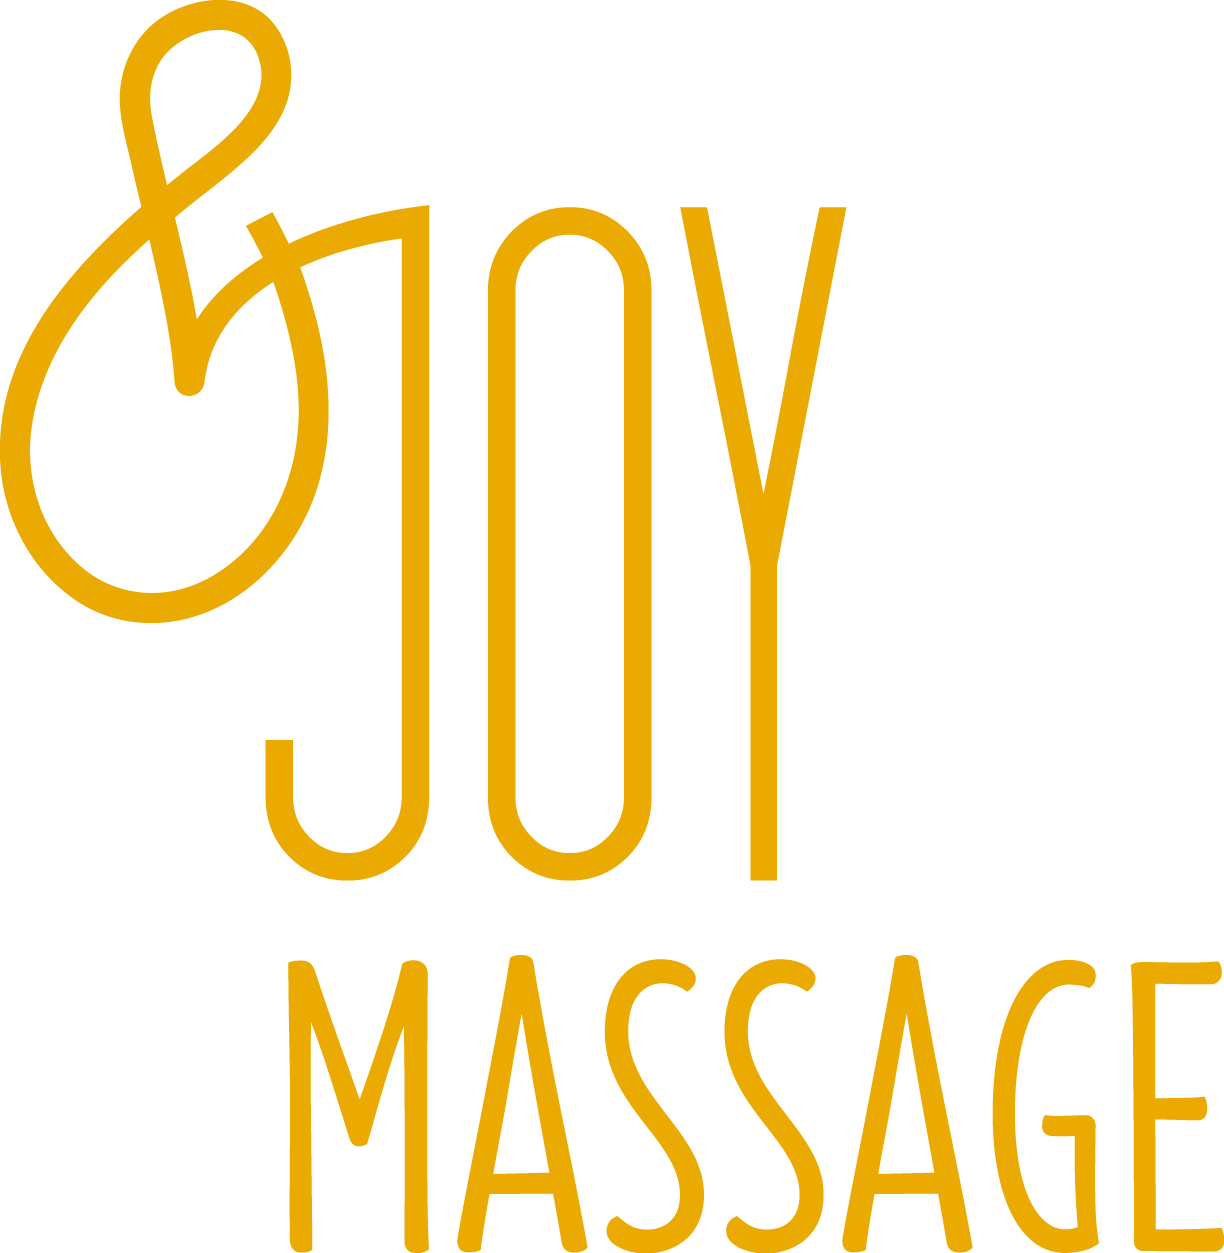 JOY titellogo MASSAGE web